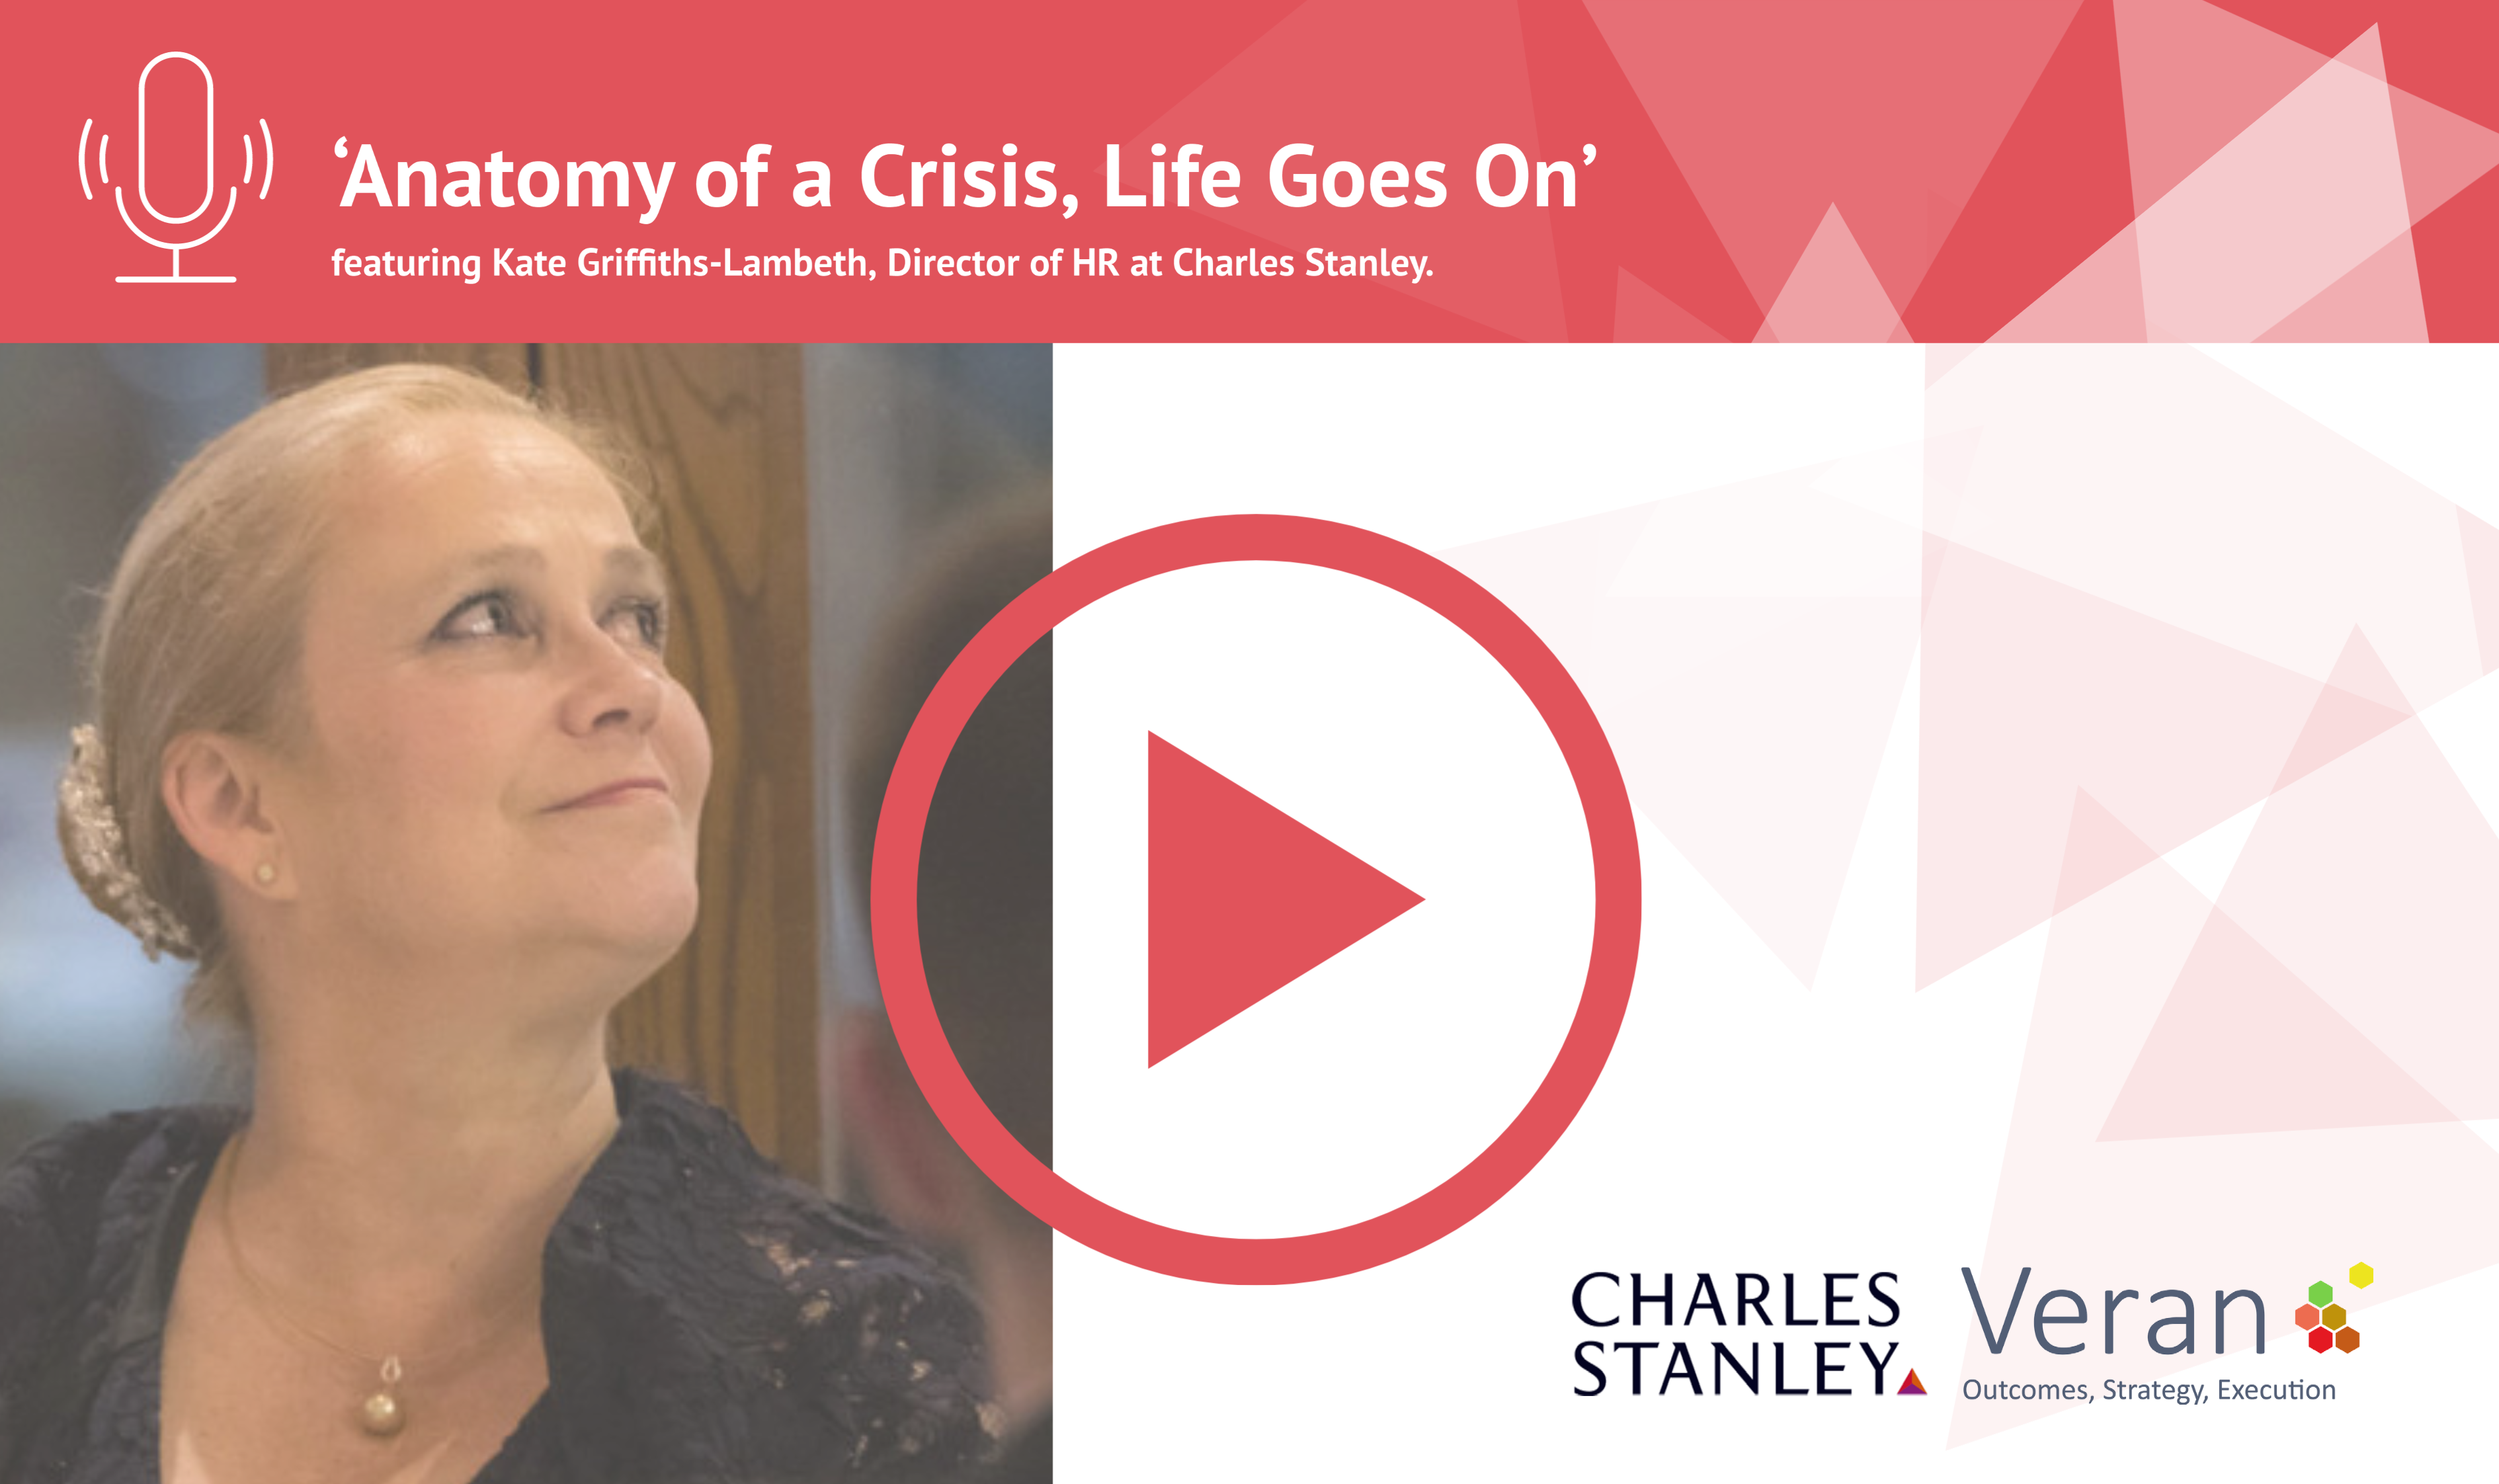 Anatomy of a Crisis, Life Goes On with Kate Griffiths-Lambeth